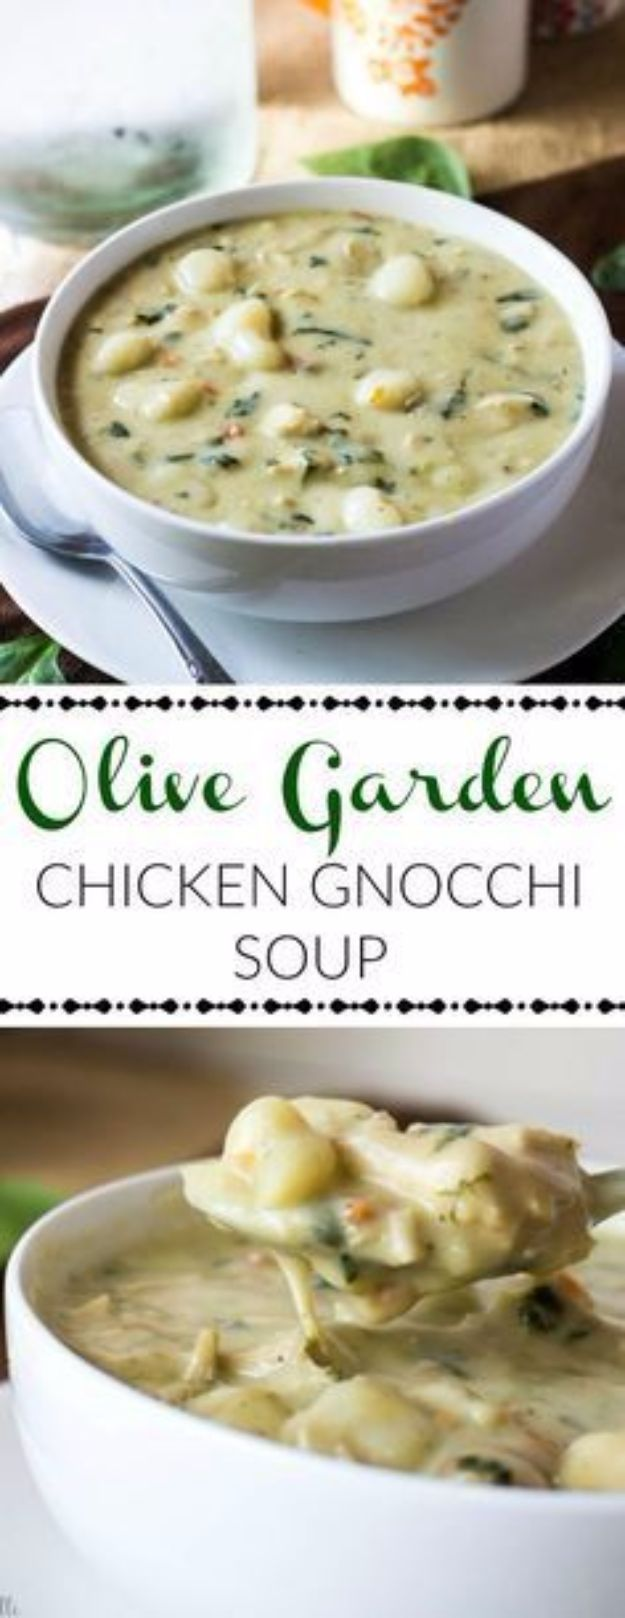 Best Fall Recipes and Ideas for Dinner - Olive Garden Chicken Gnocchi Soup - Quick Meals With Chicken, Beef and Fish, Easy Crockpot Meals and Make Ahead Soups and Dinners - Healthy Dinner Recipes and Fast Last Minute Foods With Spinach, Vegetables, Butternut Squash, Pumpkin and Nuts